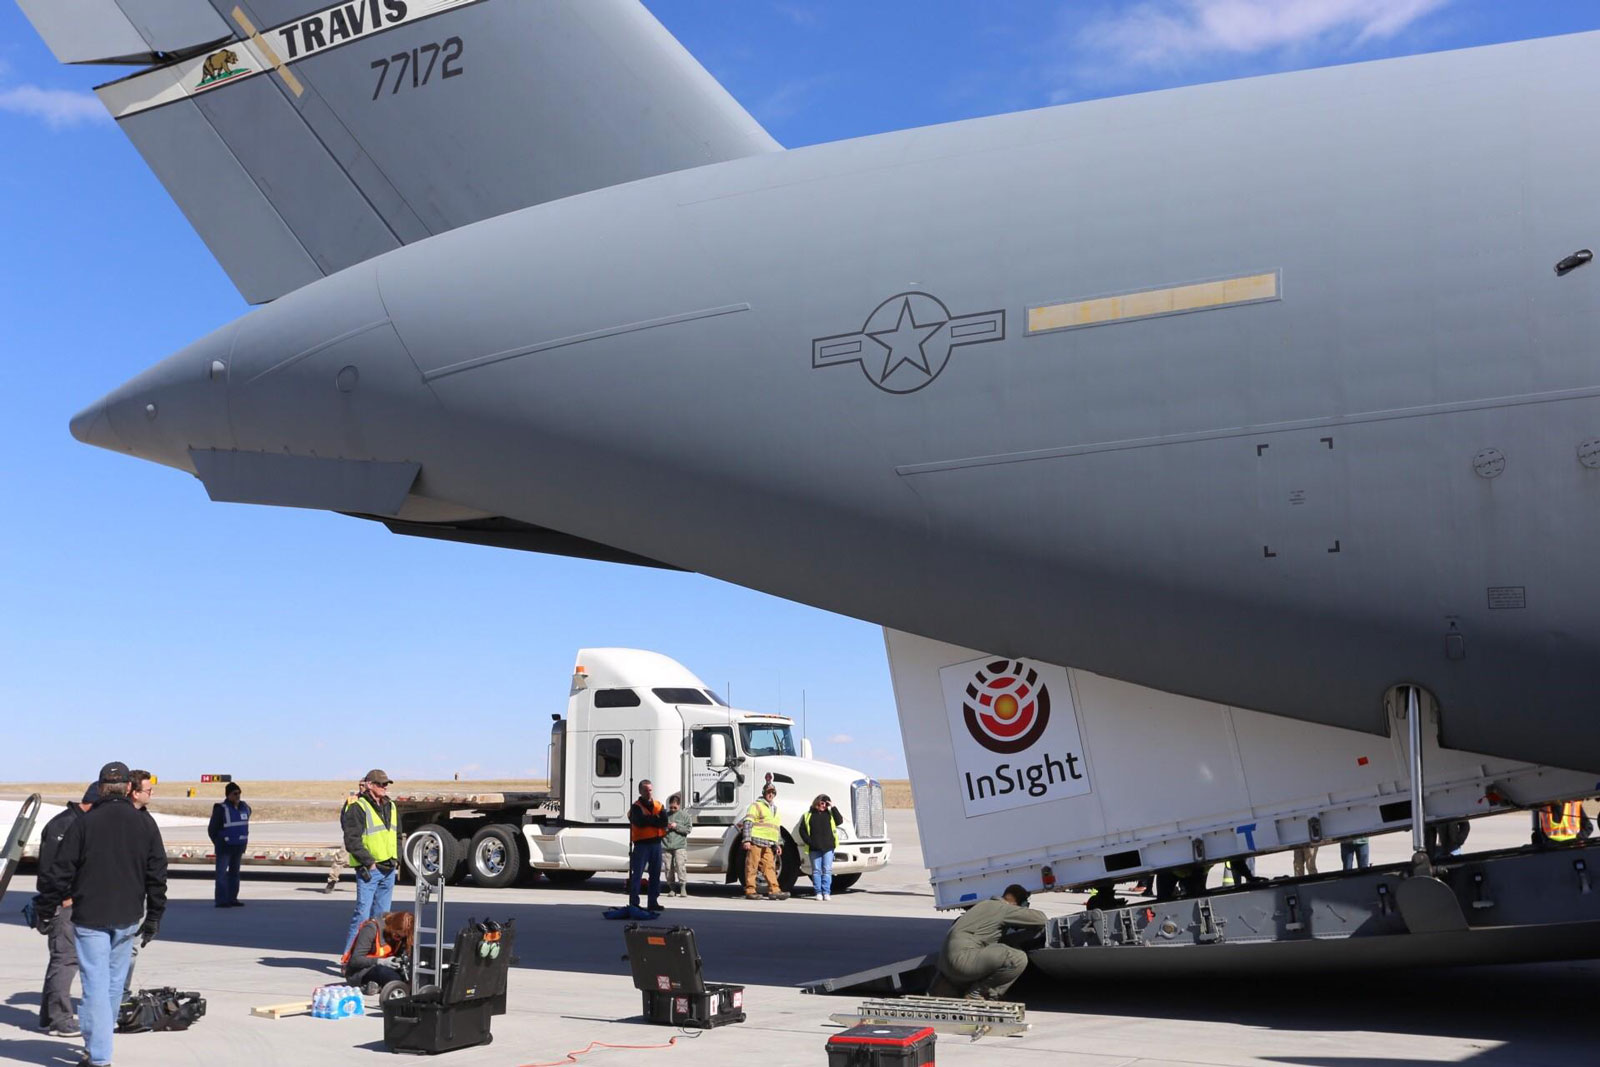 Personnel supporting NASA's InSight mission to Mars load the crated InSight spacecraft into a C-17 cargo aircraft at Buckley Air Force Base, Denver, for shipment to Vandenberg Air Force Base, California. The spacecraft, built in Colorado by Lockheed Martin Space, was shipped February 28, 2018, in preparation for launch from Vandenberg in May 2018.